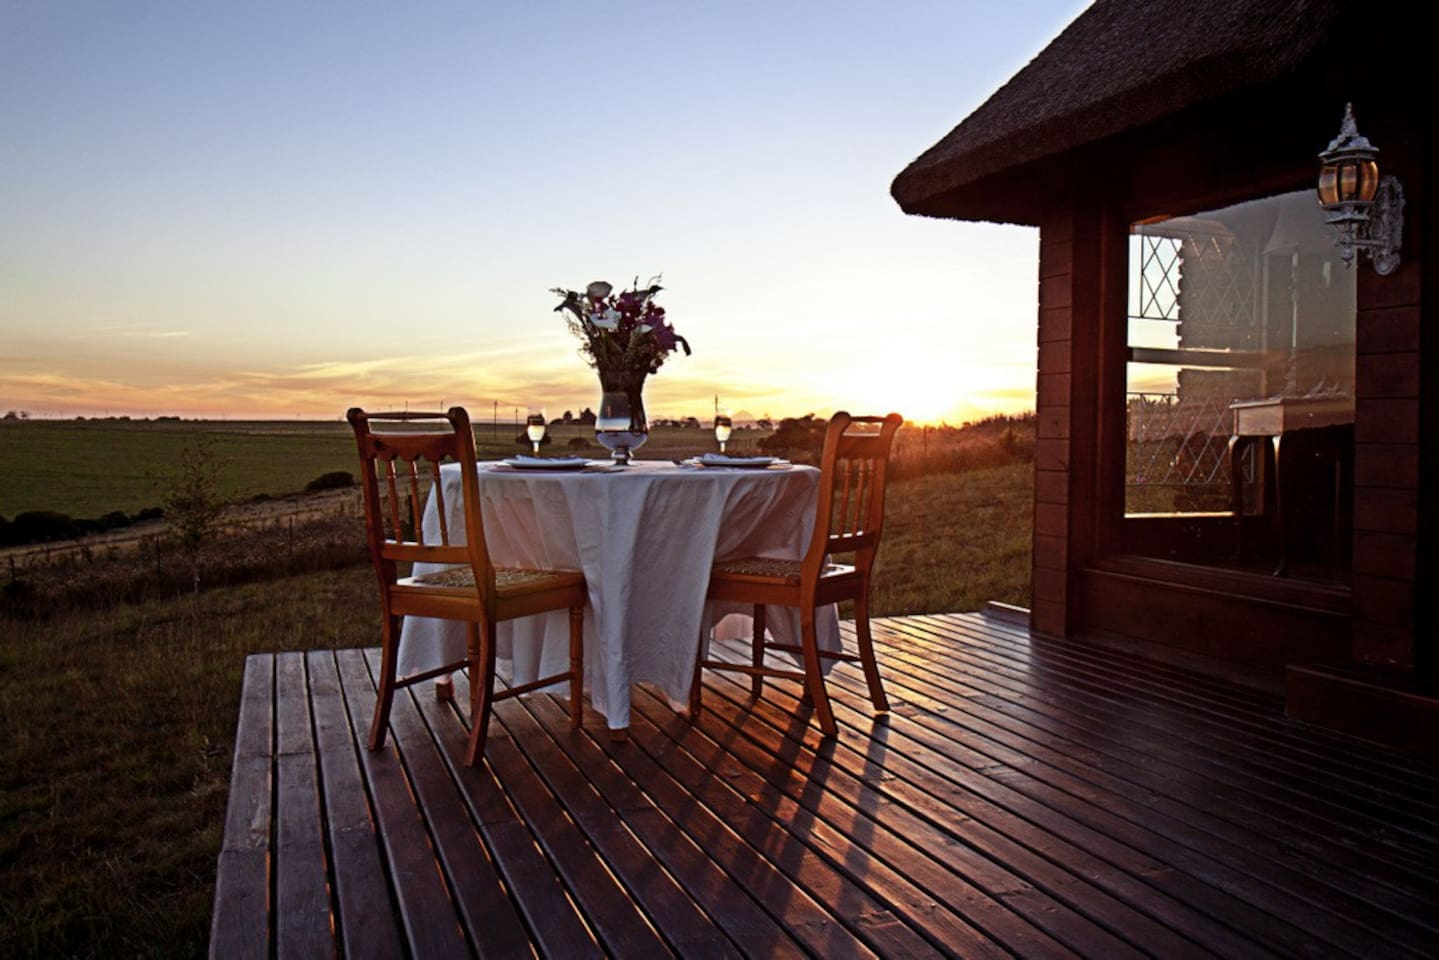 Experience romantic African sunsets on the deck.